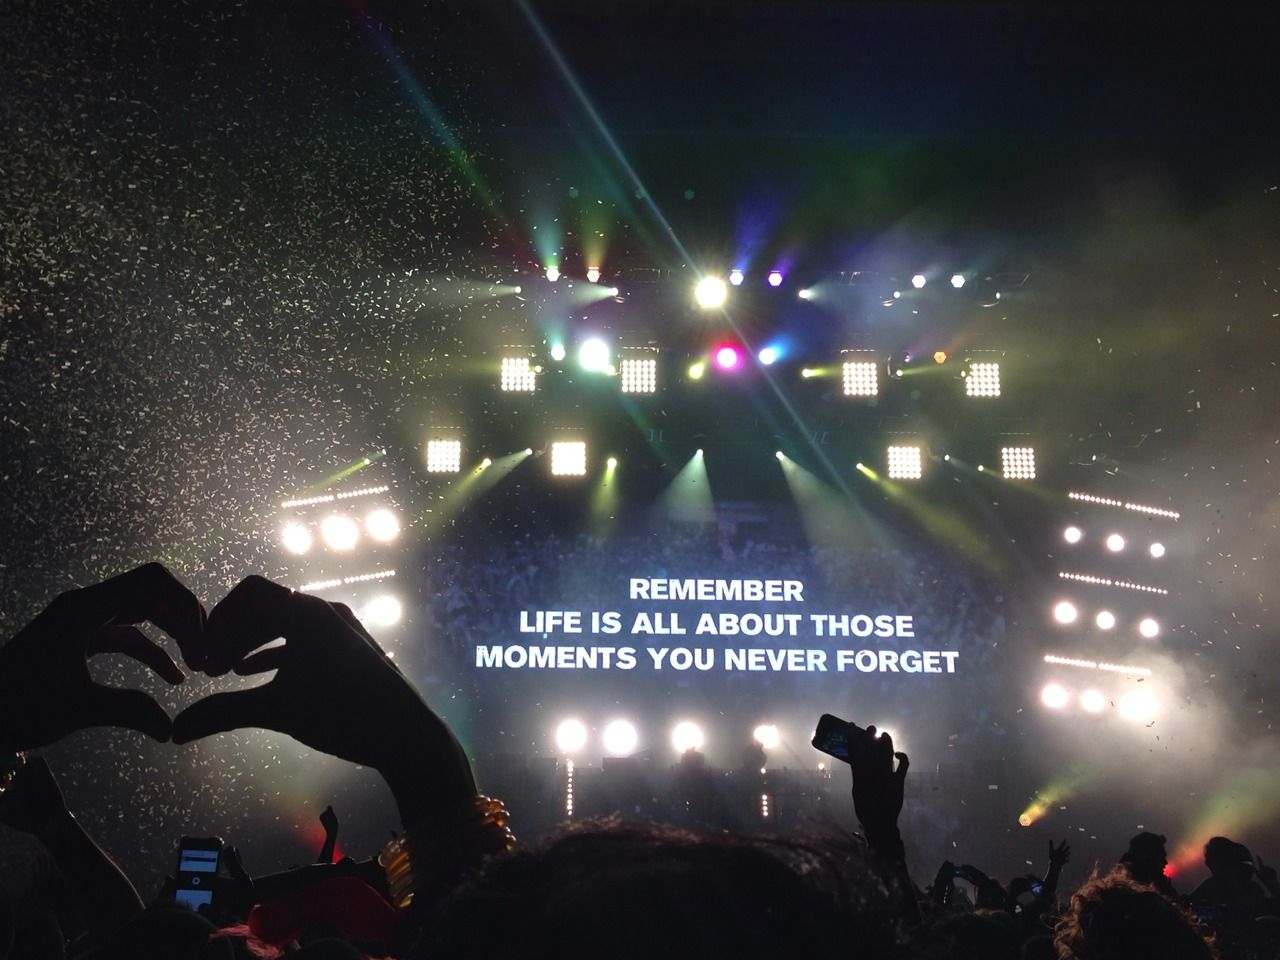 Rave is the best that you can remember all your life